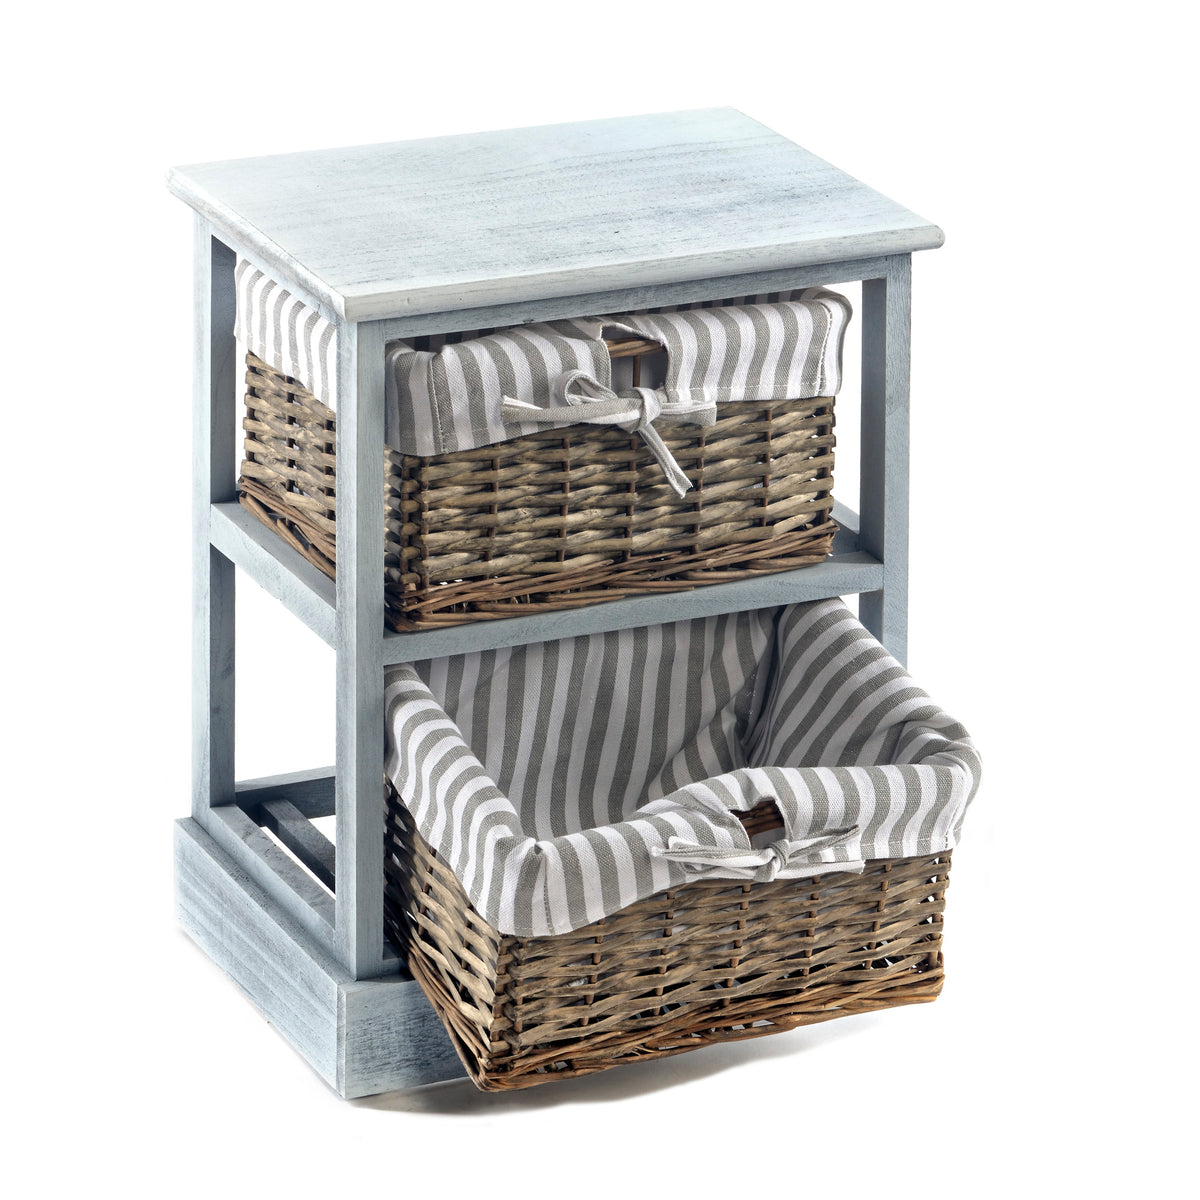 Wooden Storage Cabinet with Baskets - Seashore No4